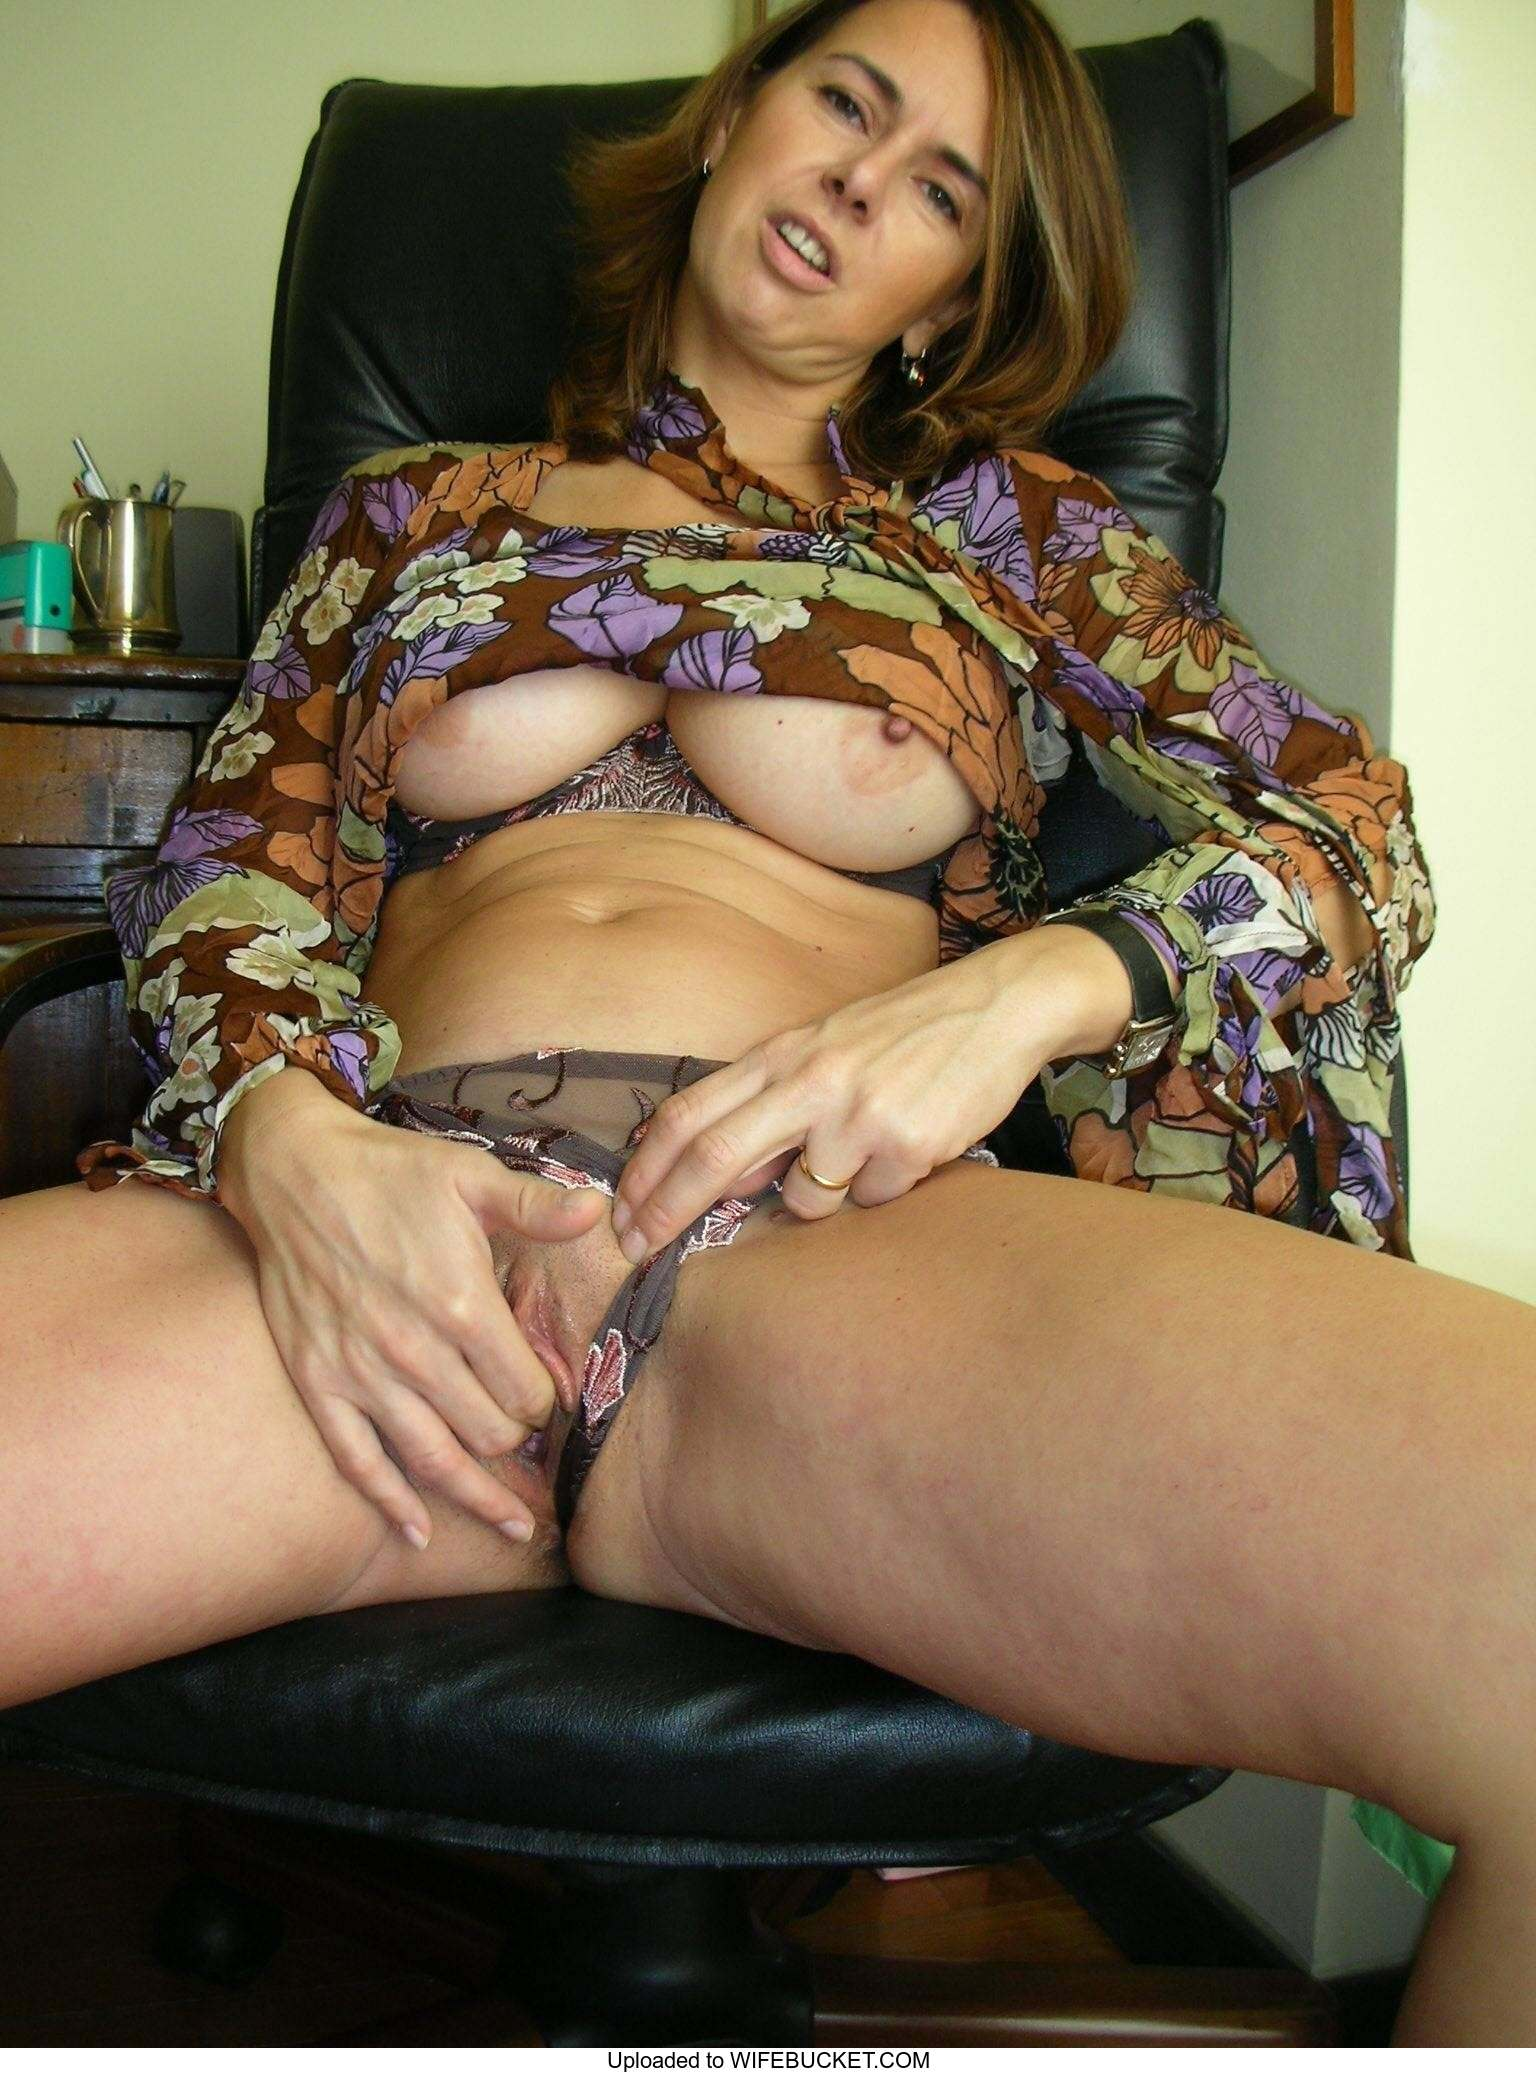 32 Free Photos Of Juicy Milf Pussies  Wifebucket -8764